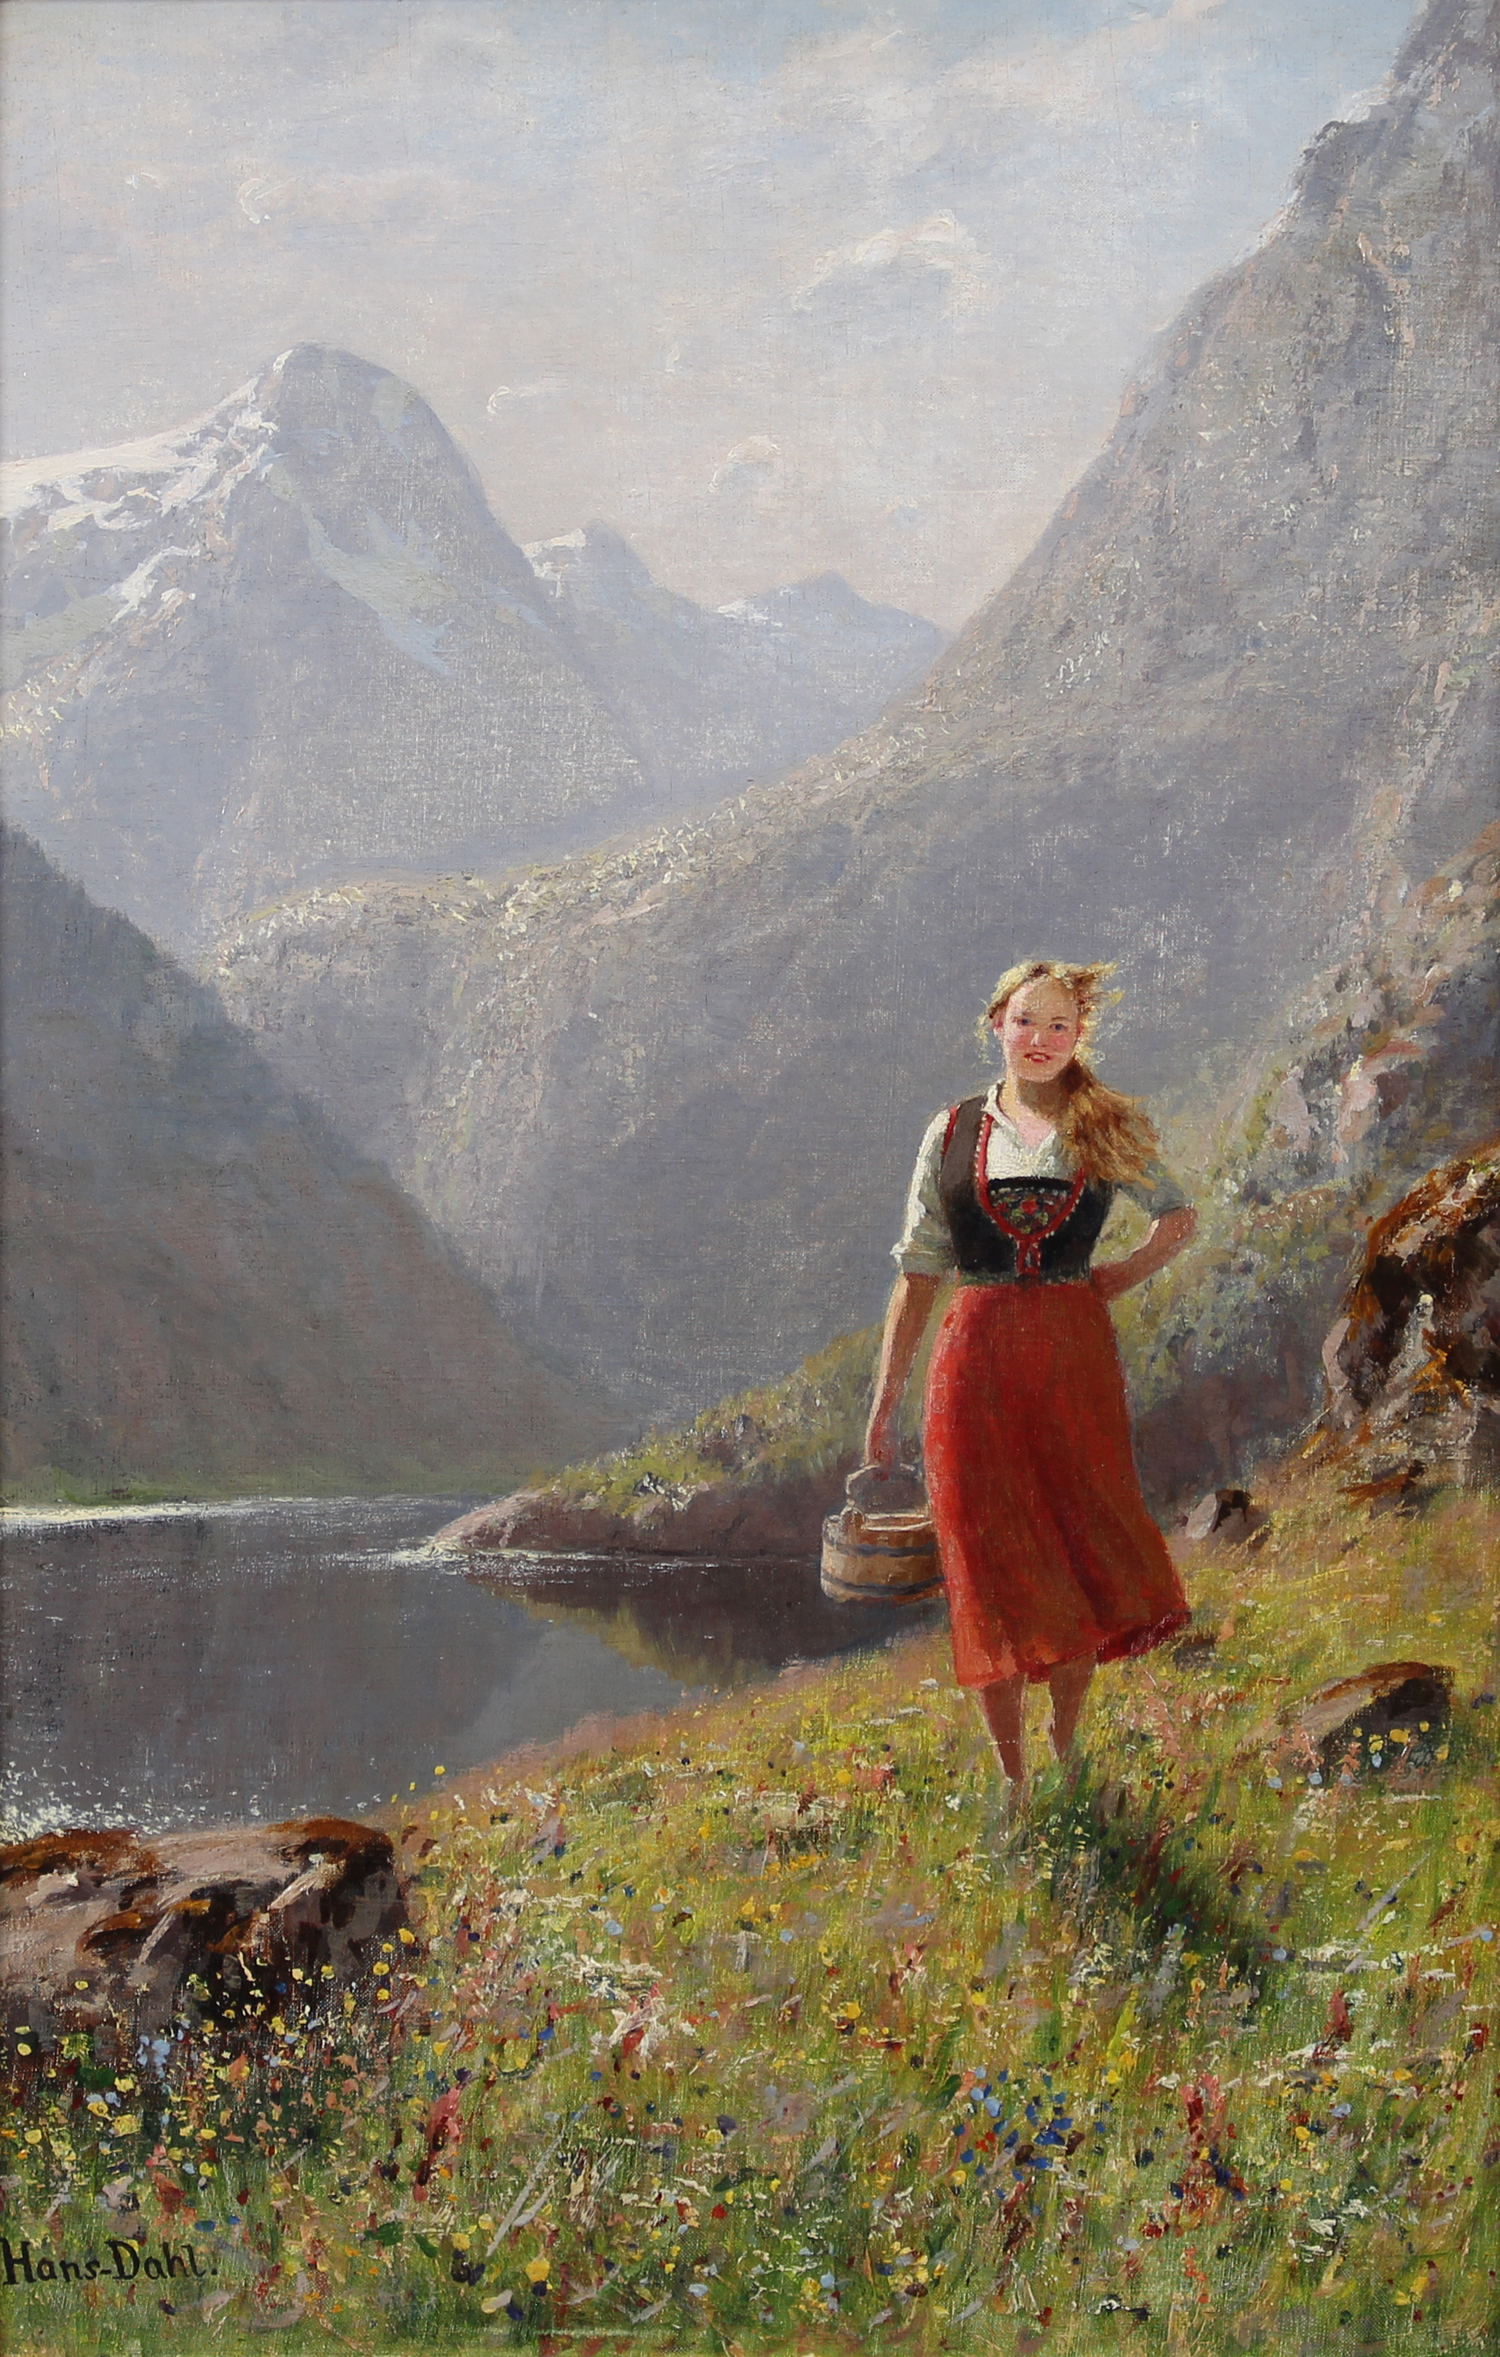 Hans Dahl (Norwegian 1849-1937) 'A Young Girl with a Basket in the Mountains'